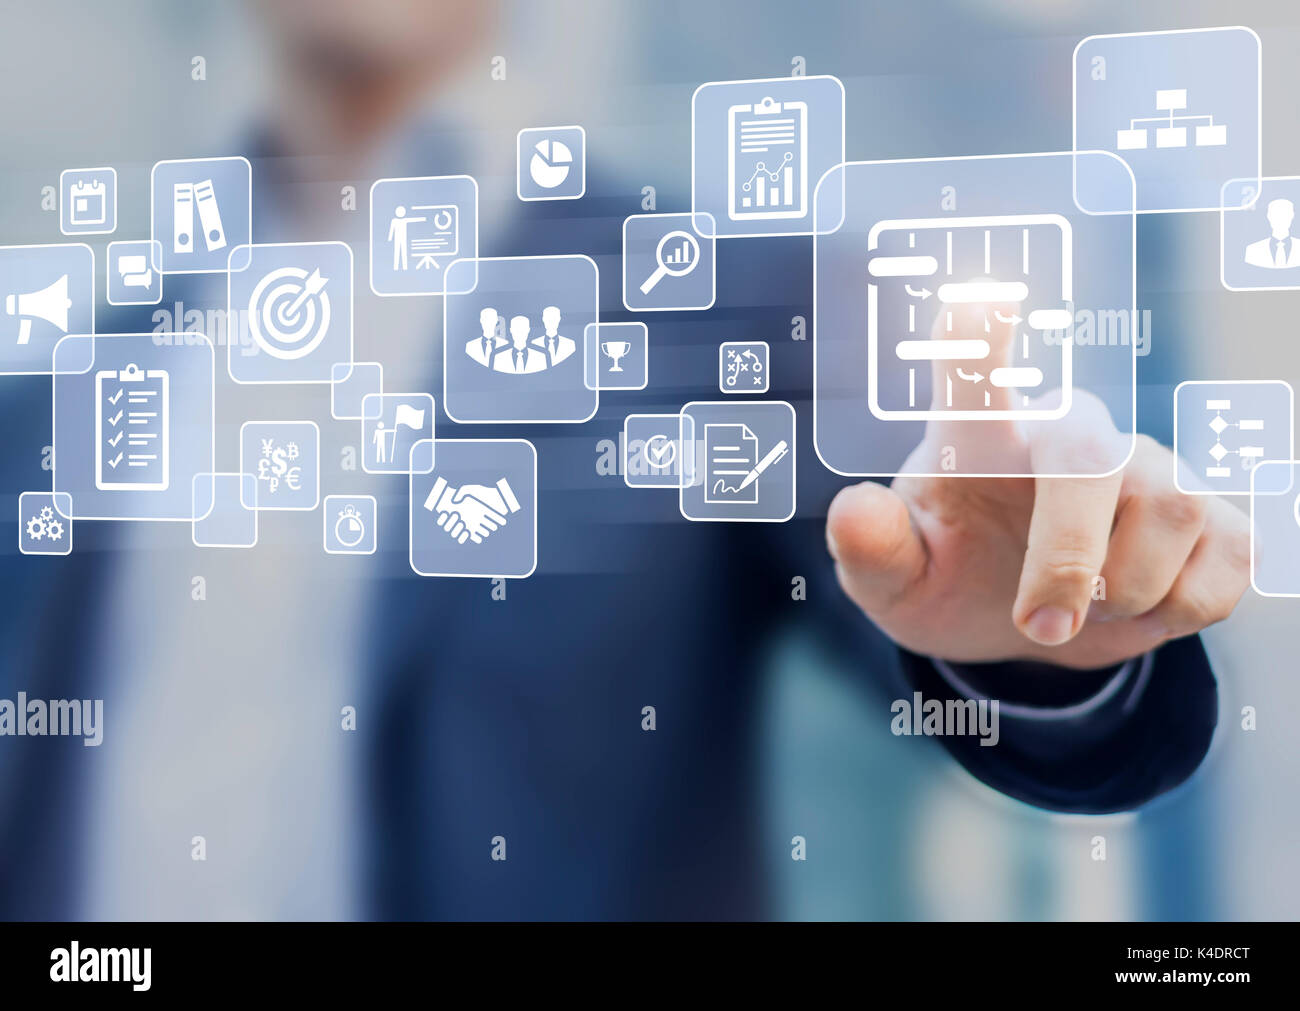 Manager touching AR virtual screen interface button about project management with icons of scheduling, budgeting, communication - Stock Image